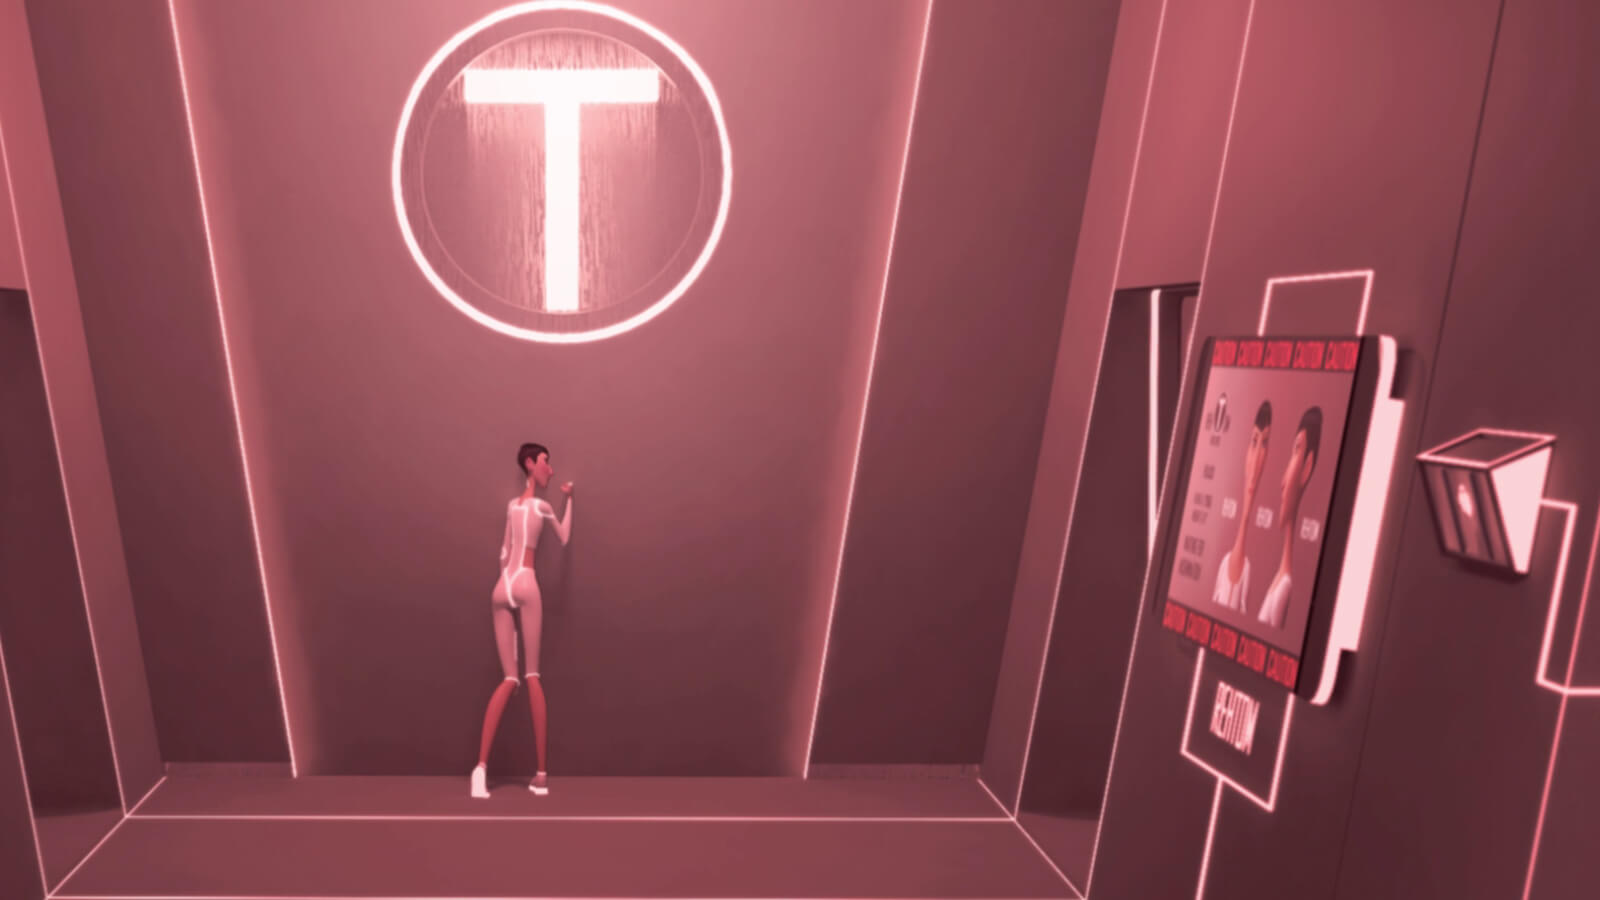 A tall, thin woman wearing futuristic white clothing leans against a pink-lit wall with a glowing T logo above her